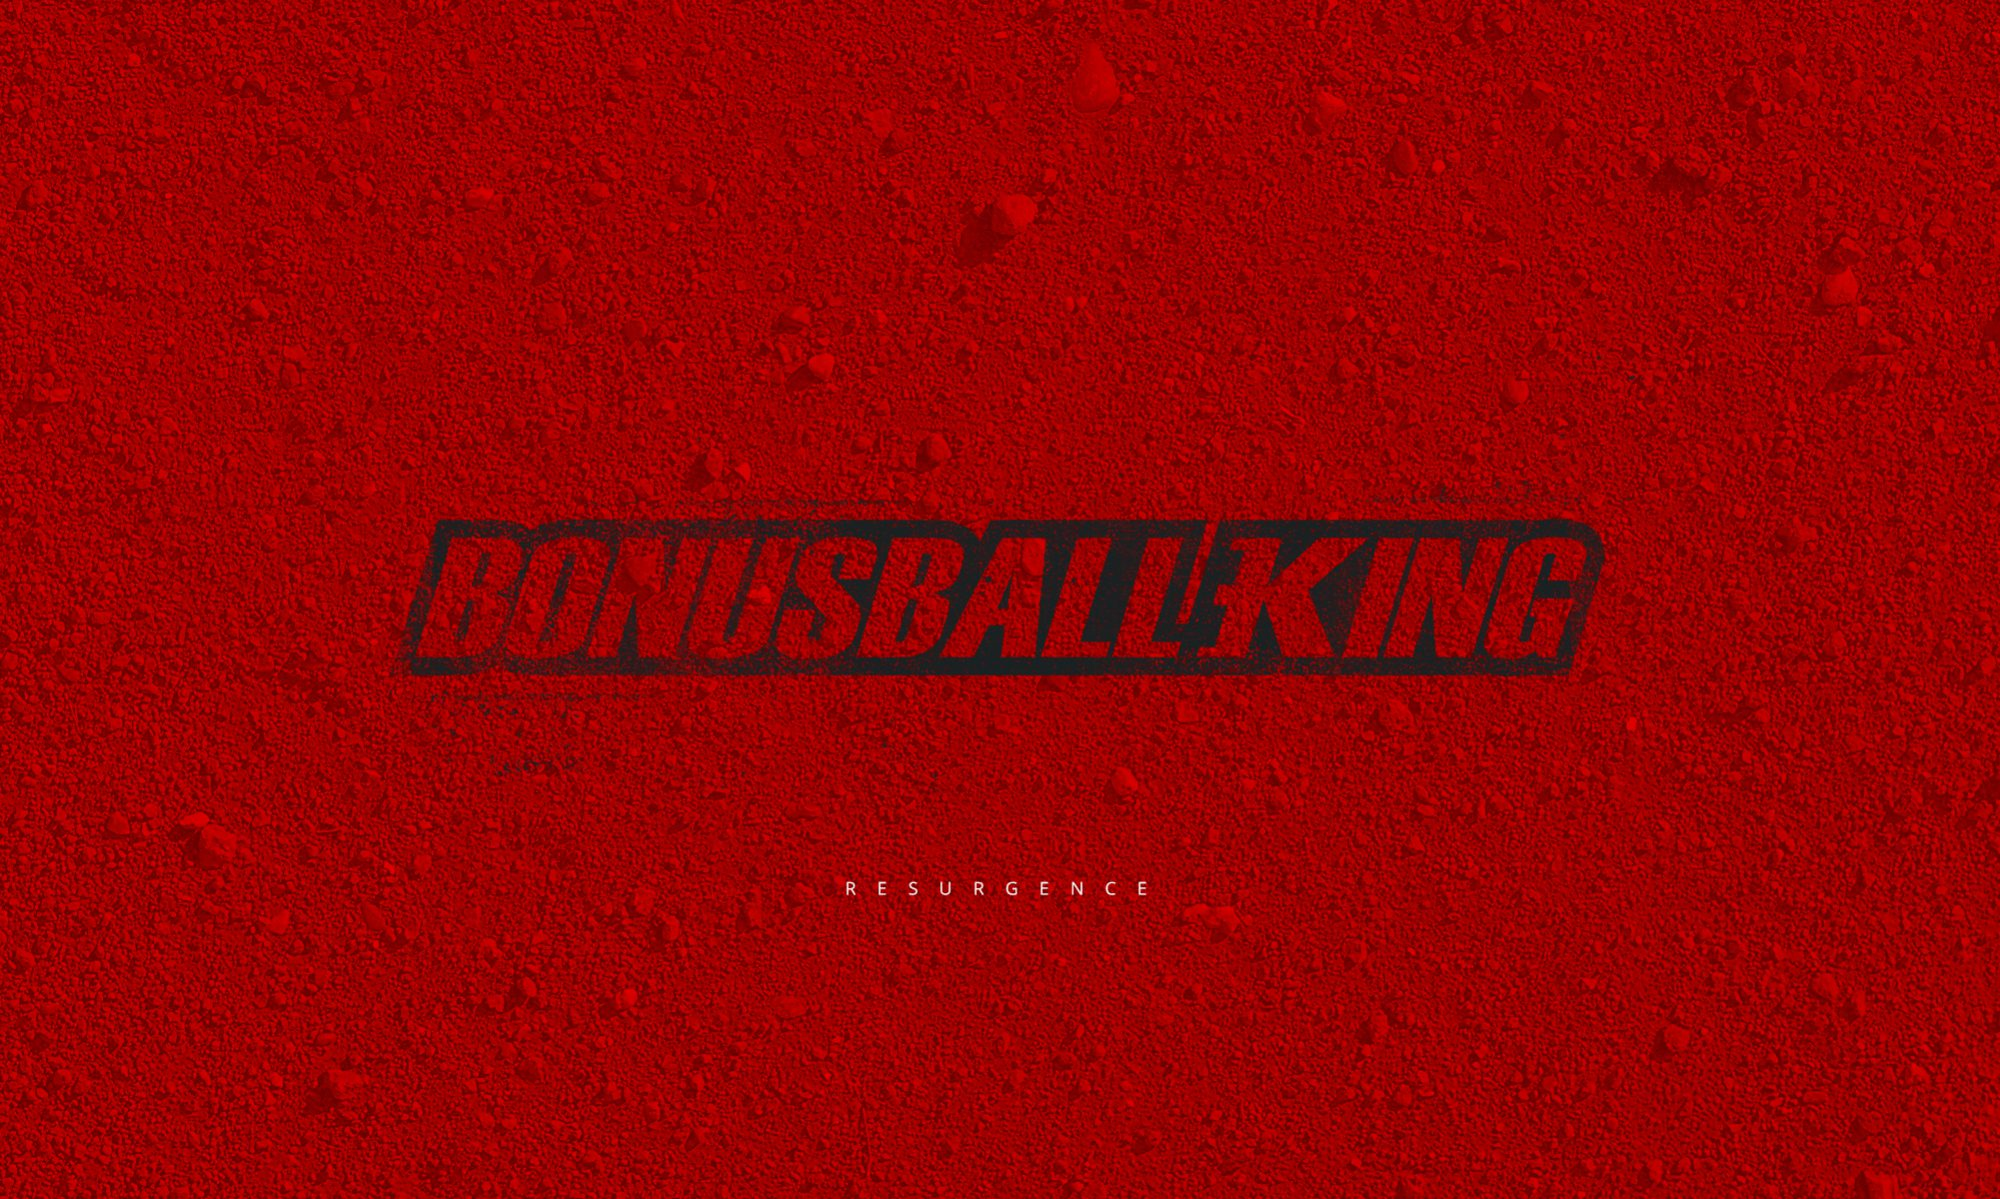 BONUSBALLKING - It's part of the Game!